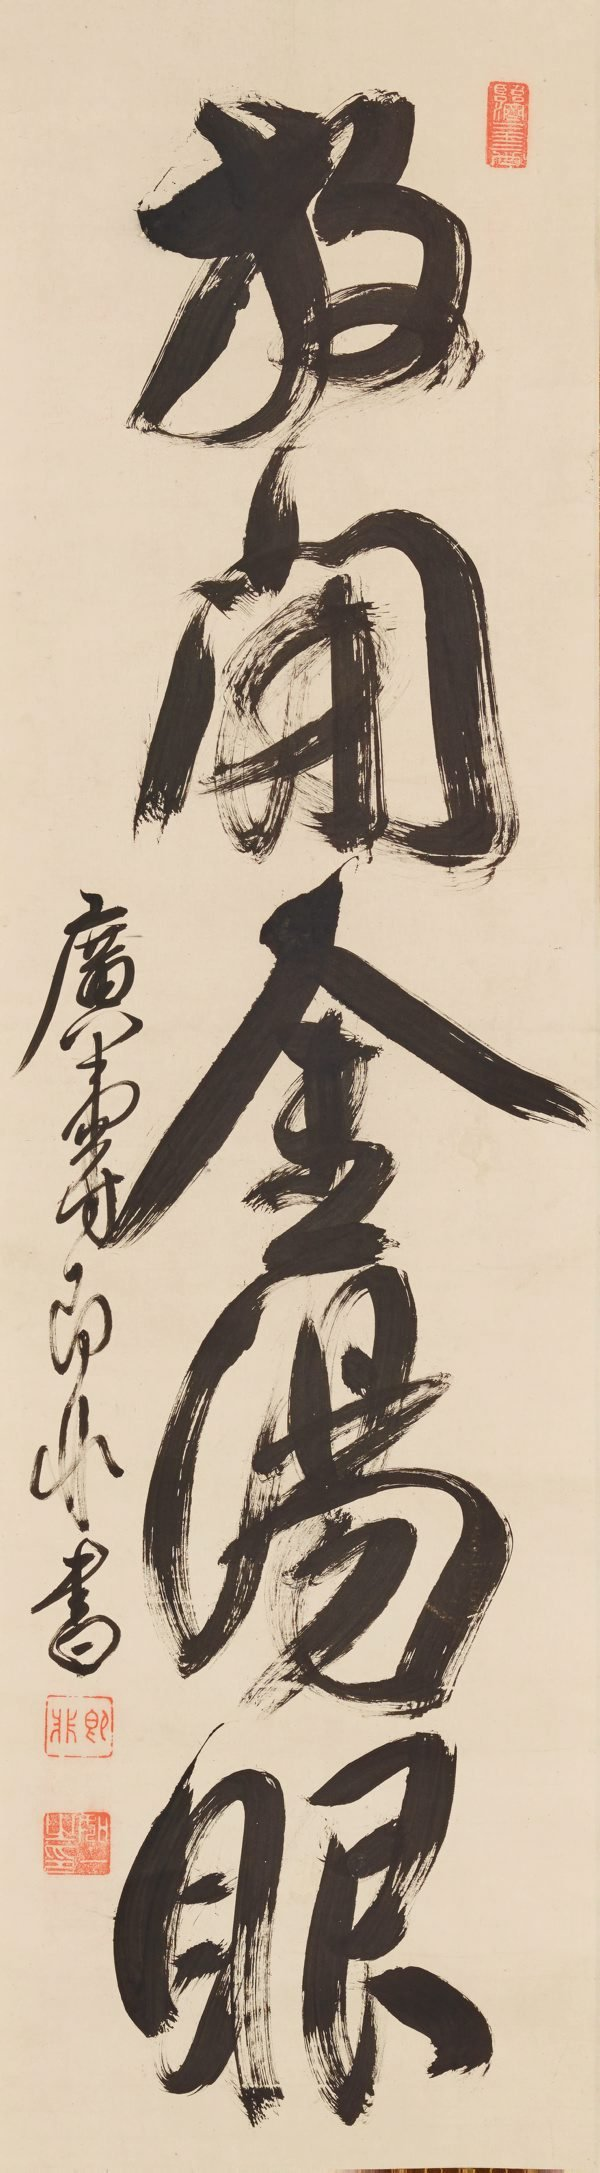 "An image of Calligraphy: ""Open one's eyes and penetrate the heart of matters, like the monkey's golden eyes did."""